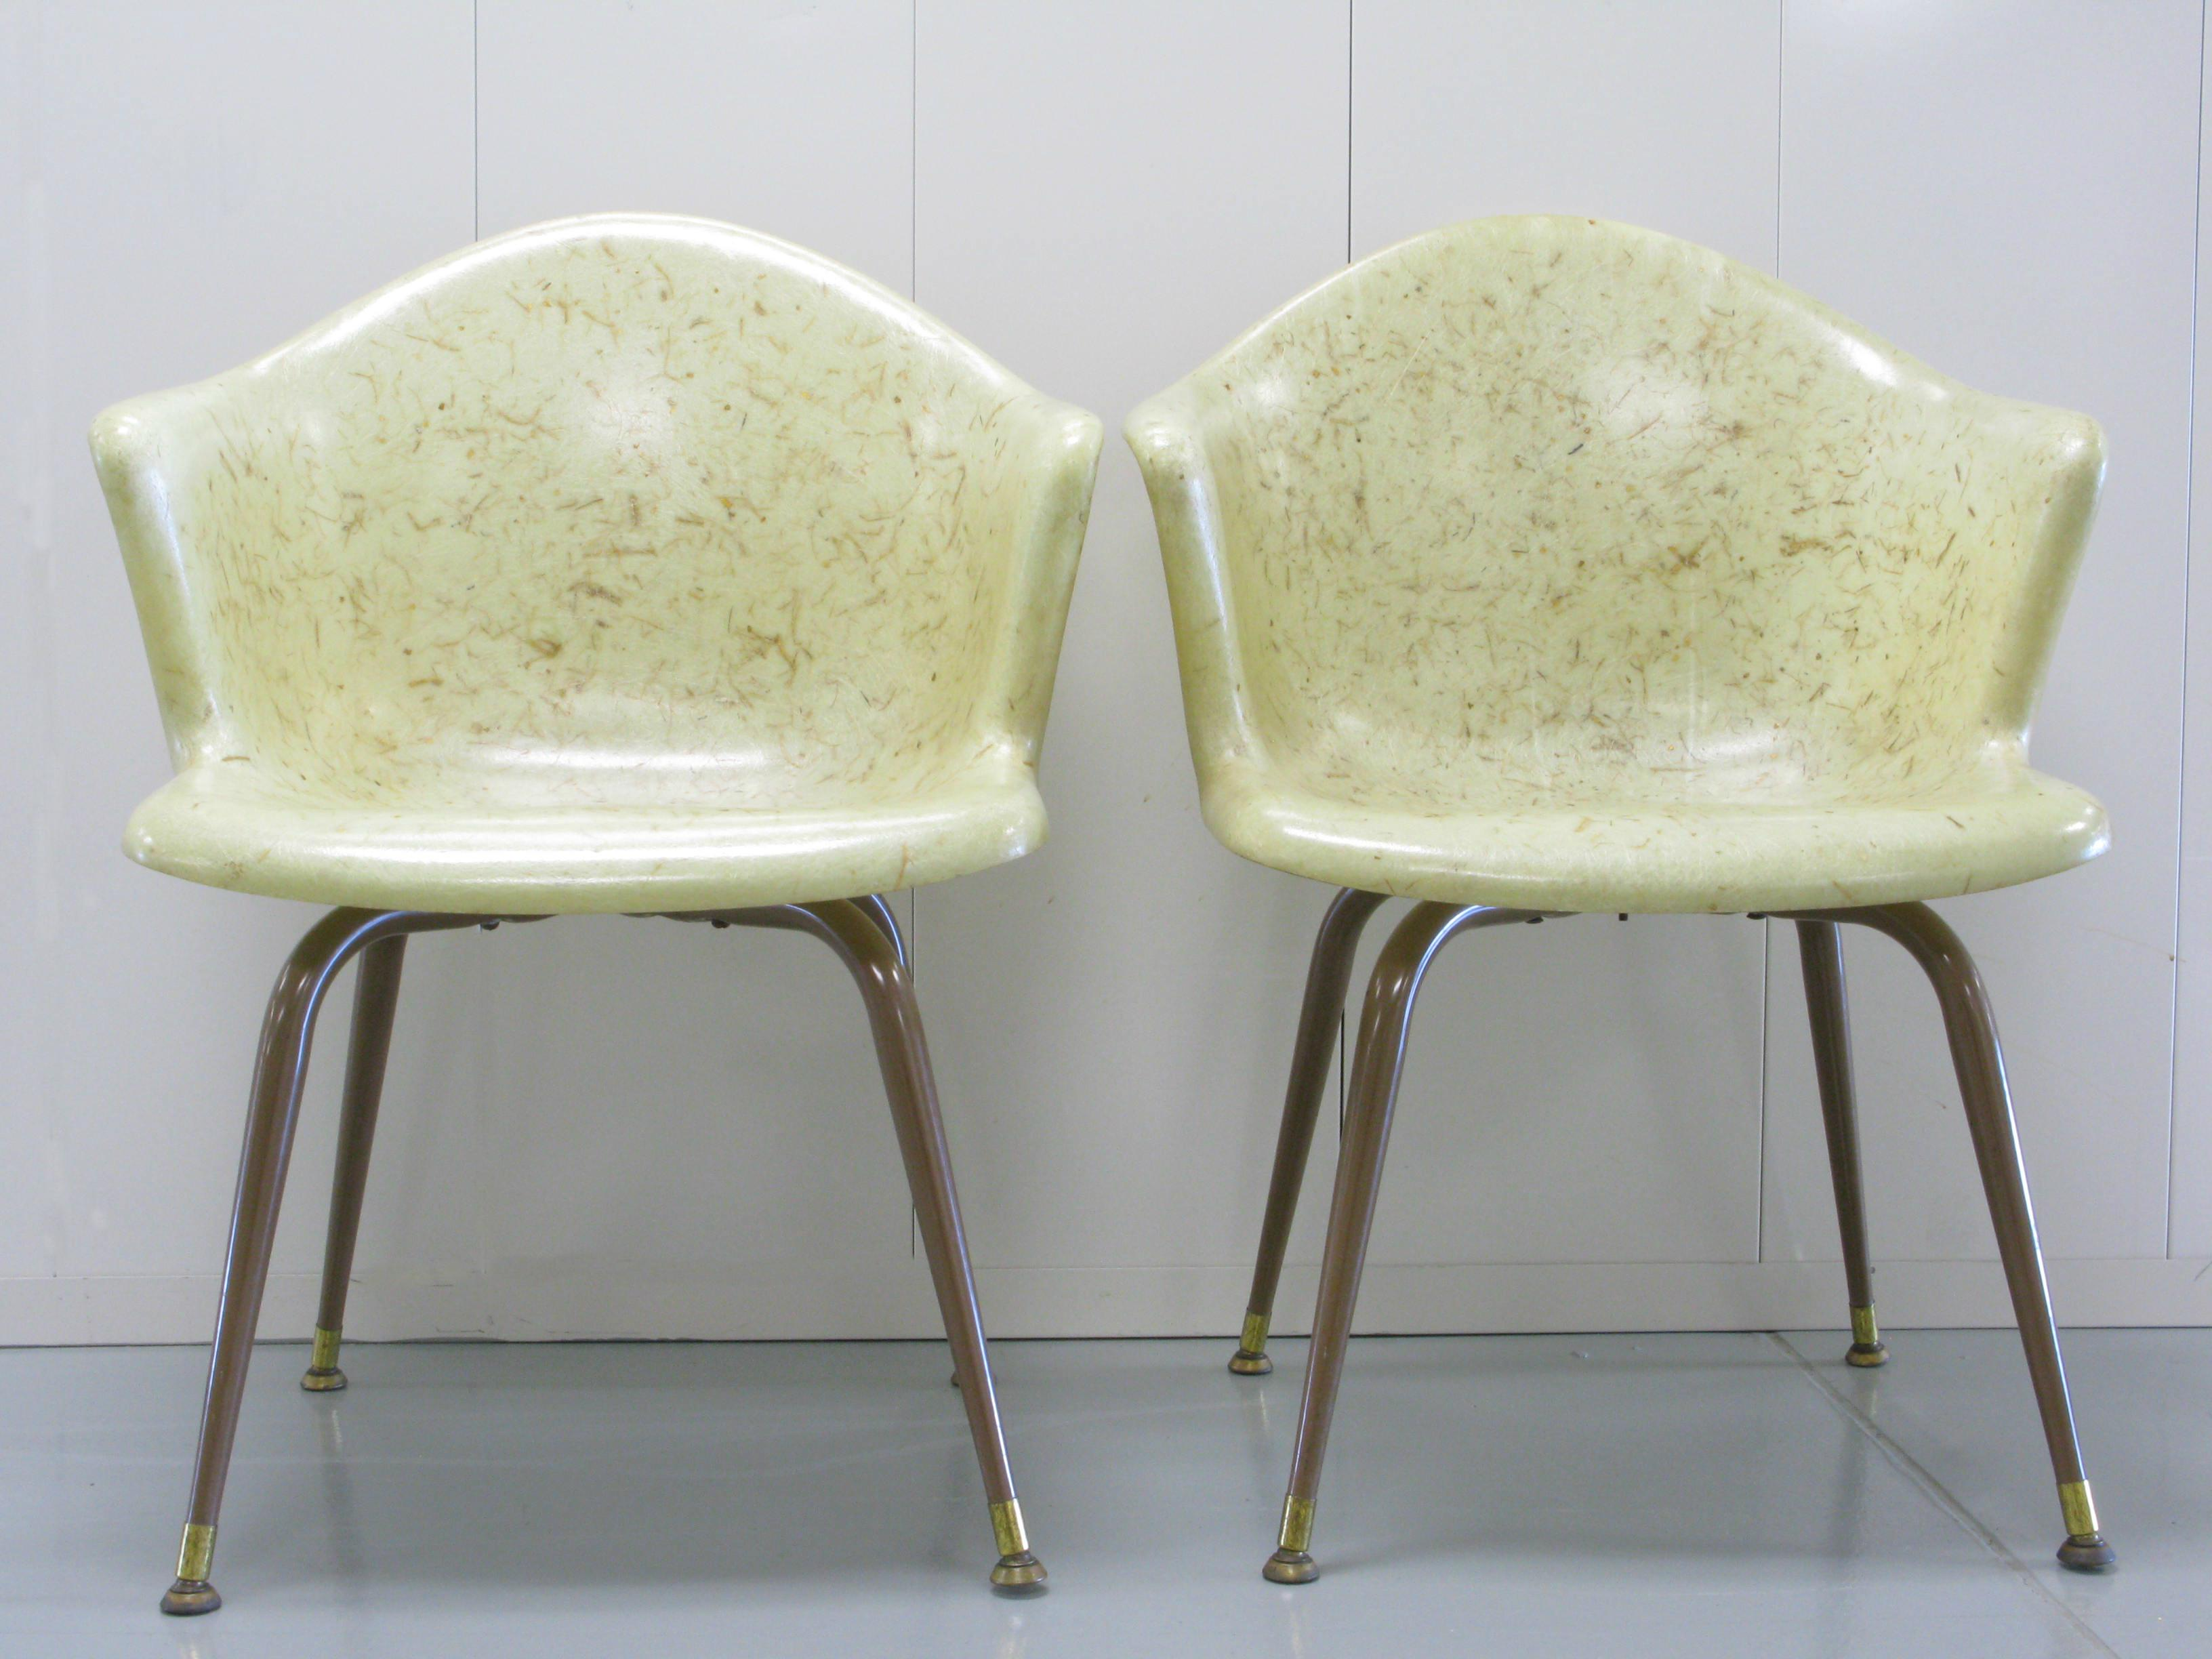 Exceptionnel Eames Era Fiberglass Shell Chairs With Wood Fiber And Gold Fleck Embedded  In Fiberglass Resin. Mid Century Modern ...